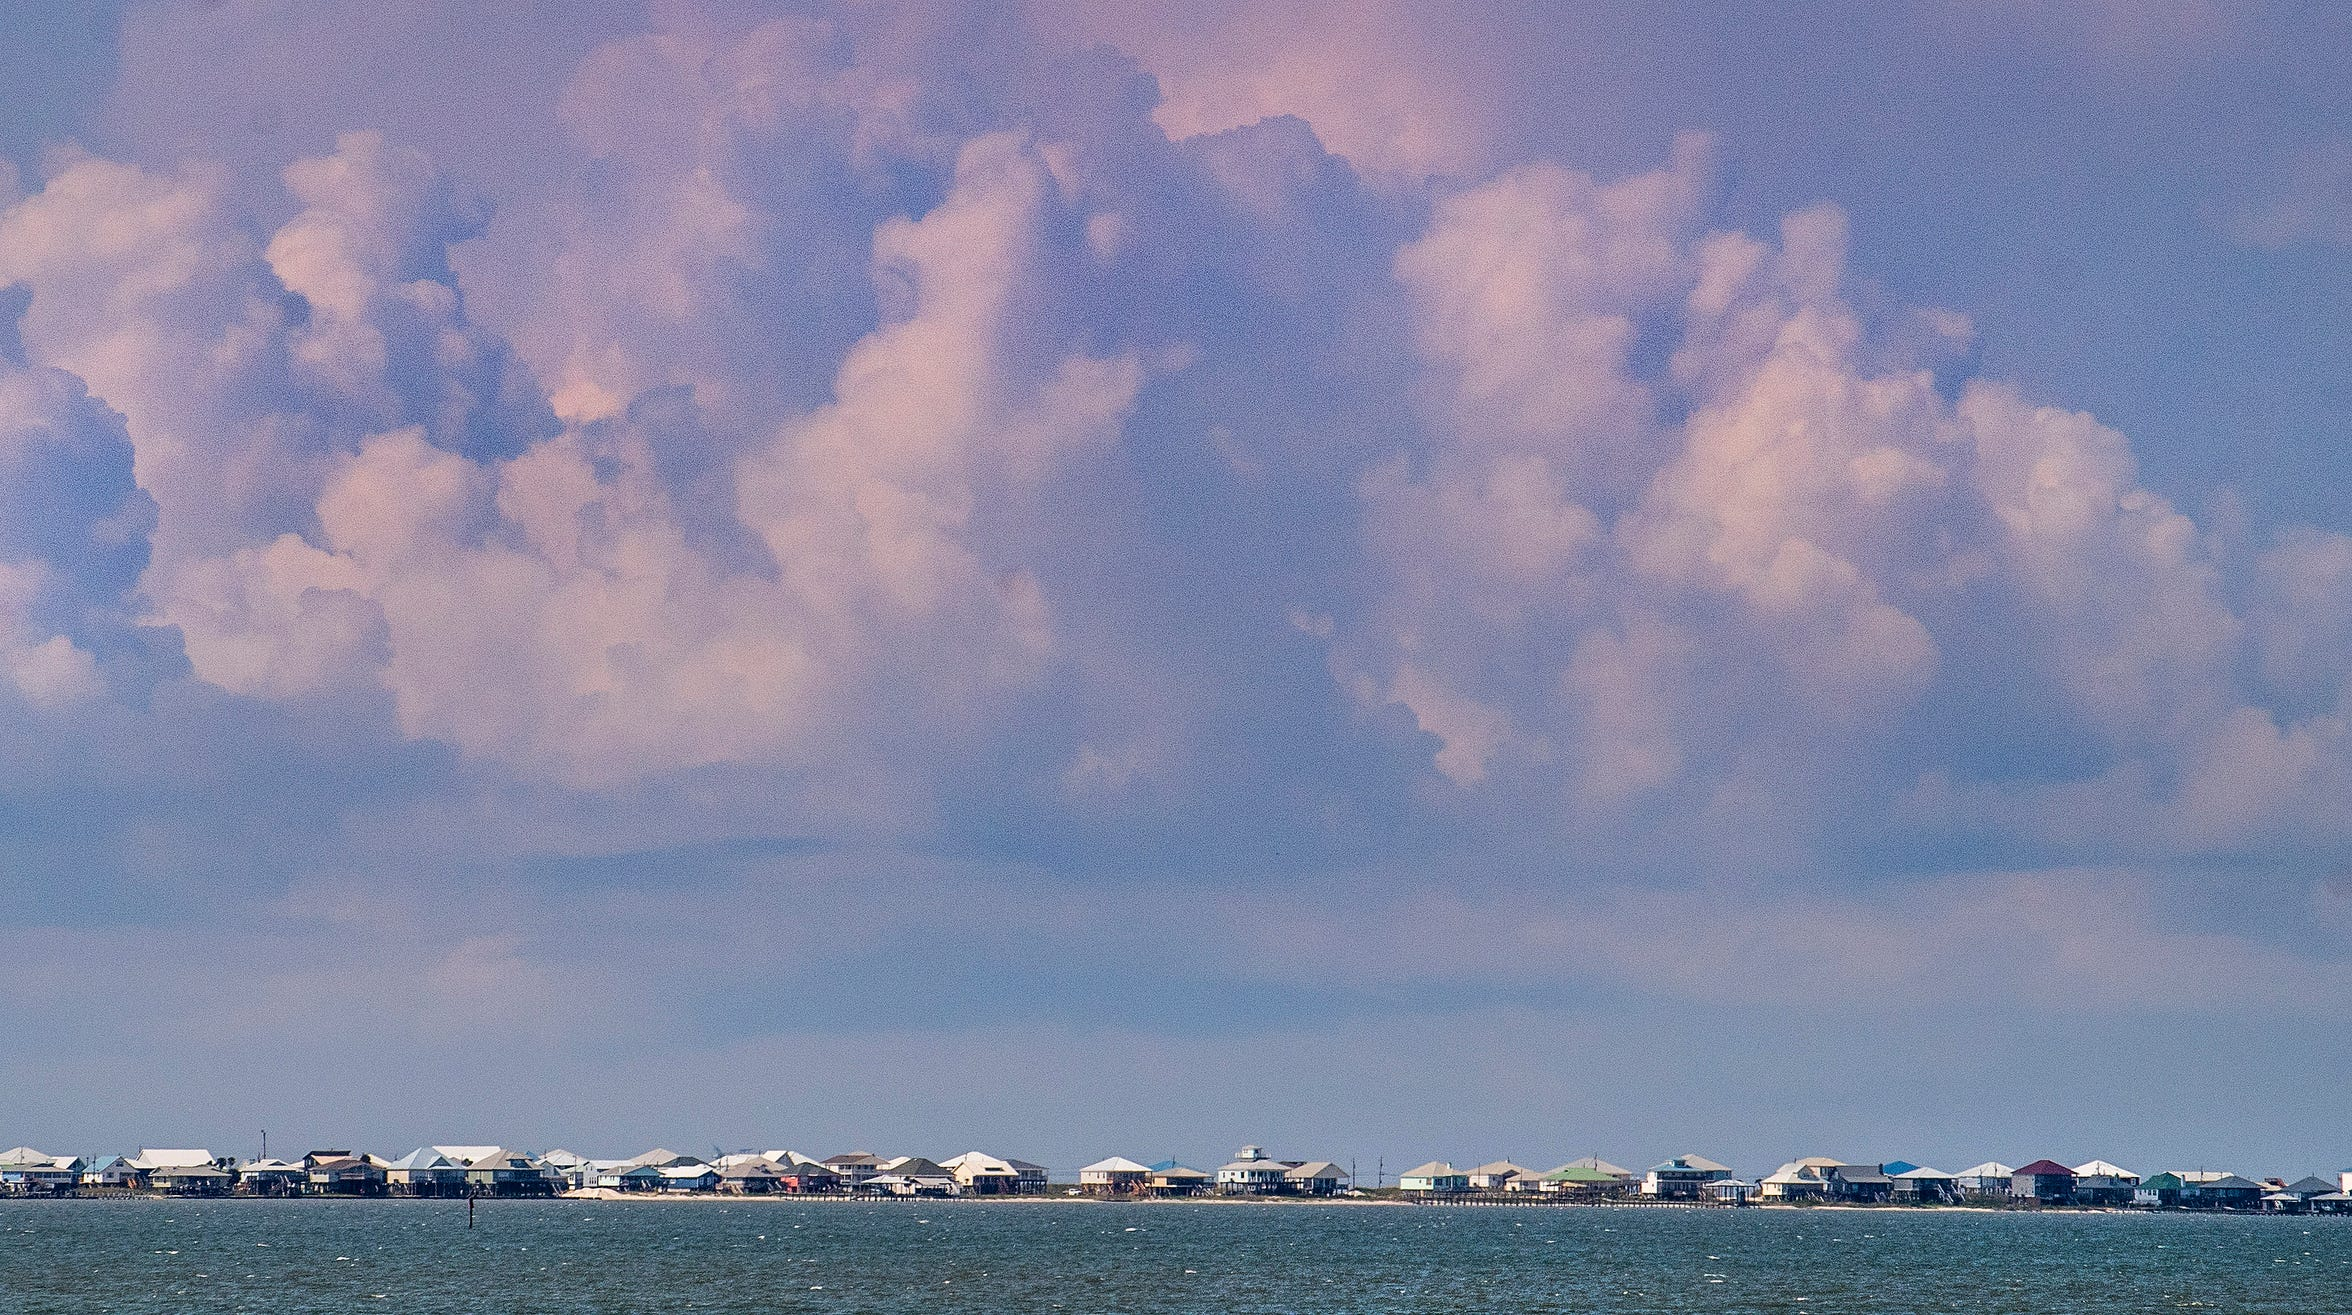 Beach houses on Dauphin Island, Ala., on Wednesday August 7, 2019.